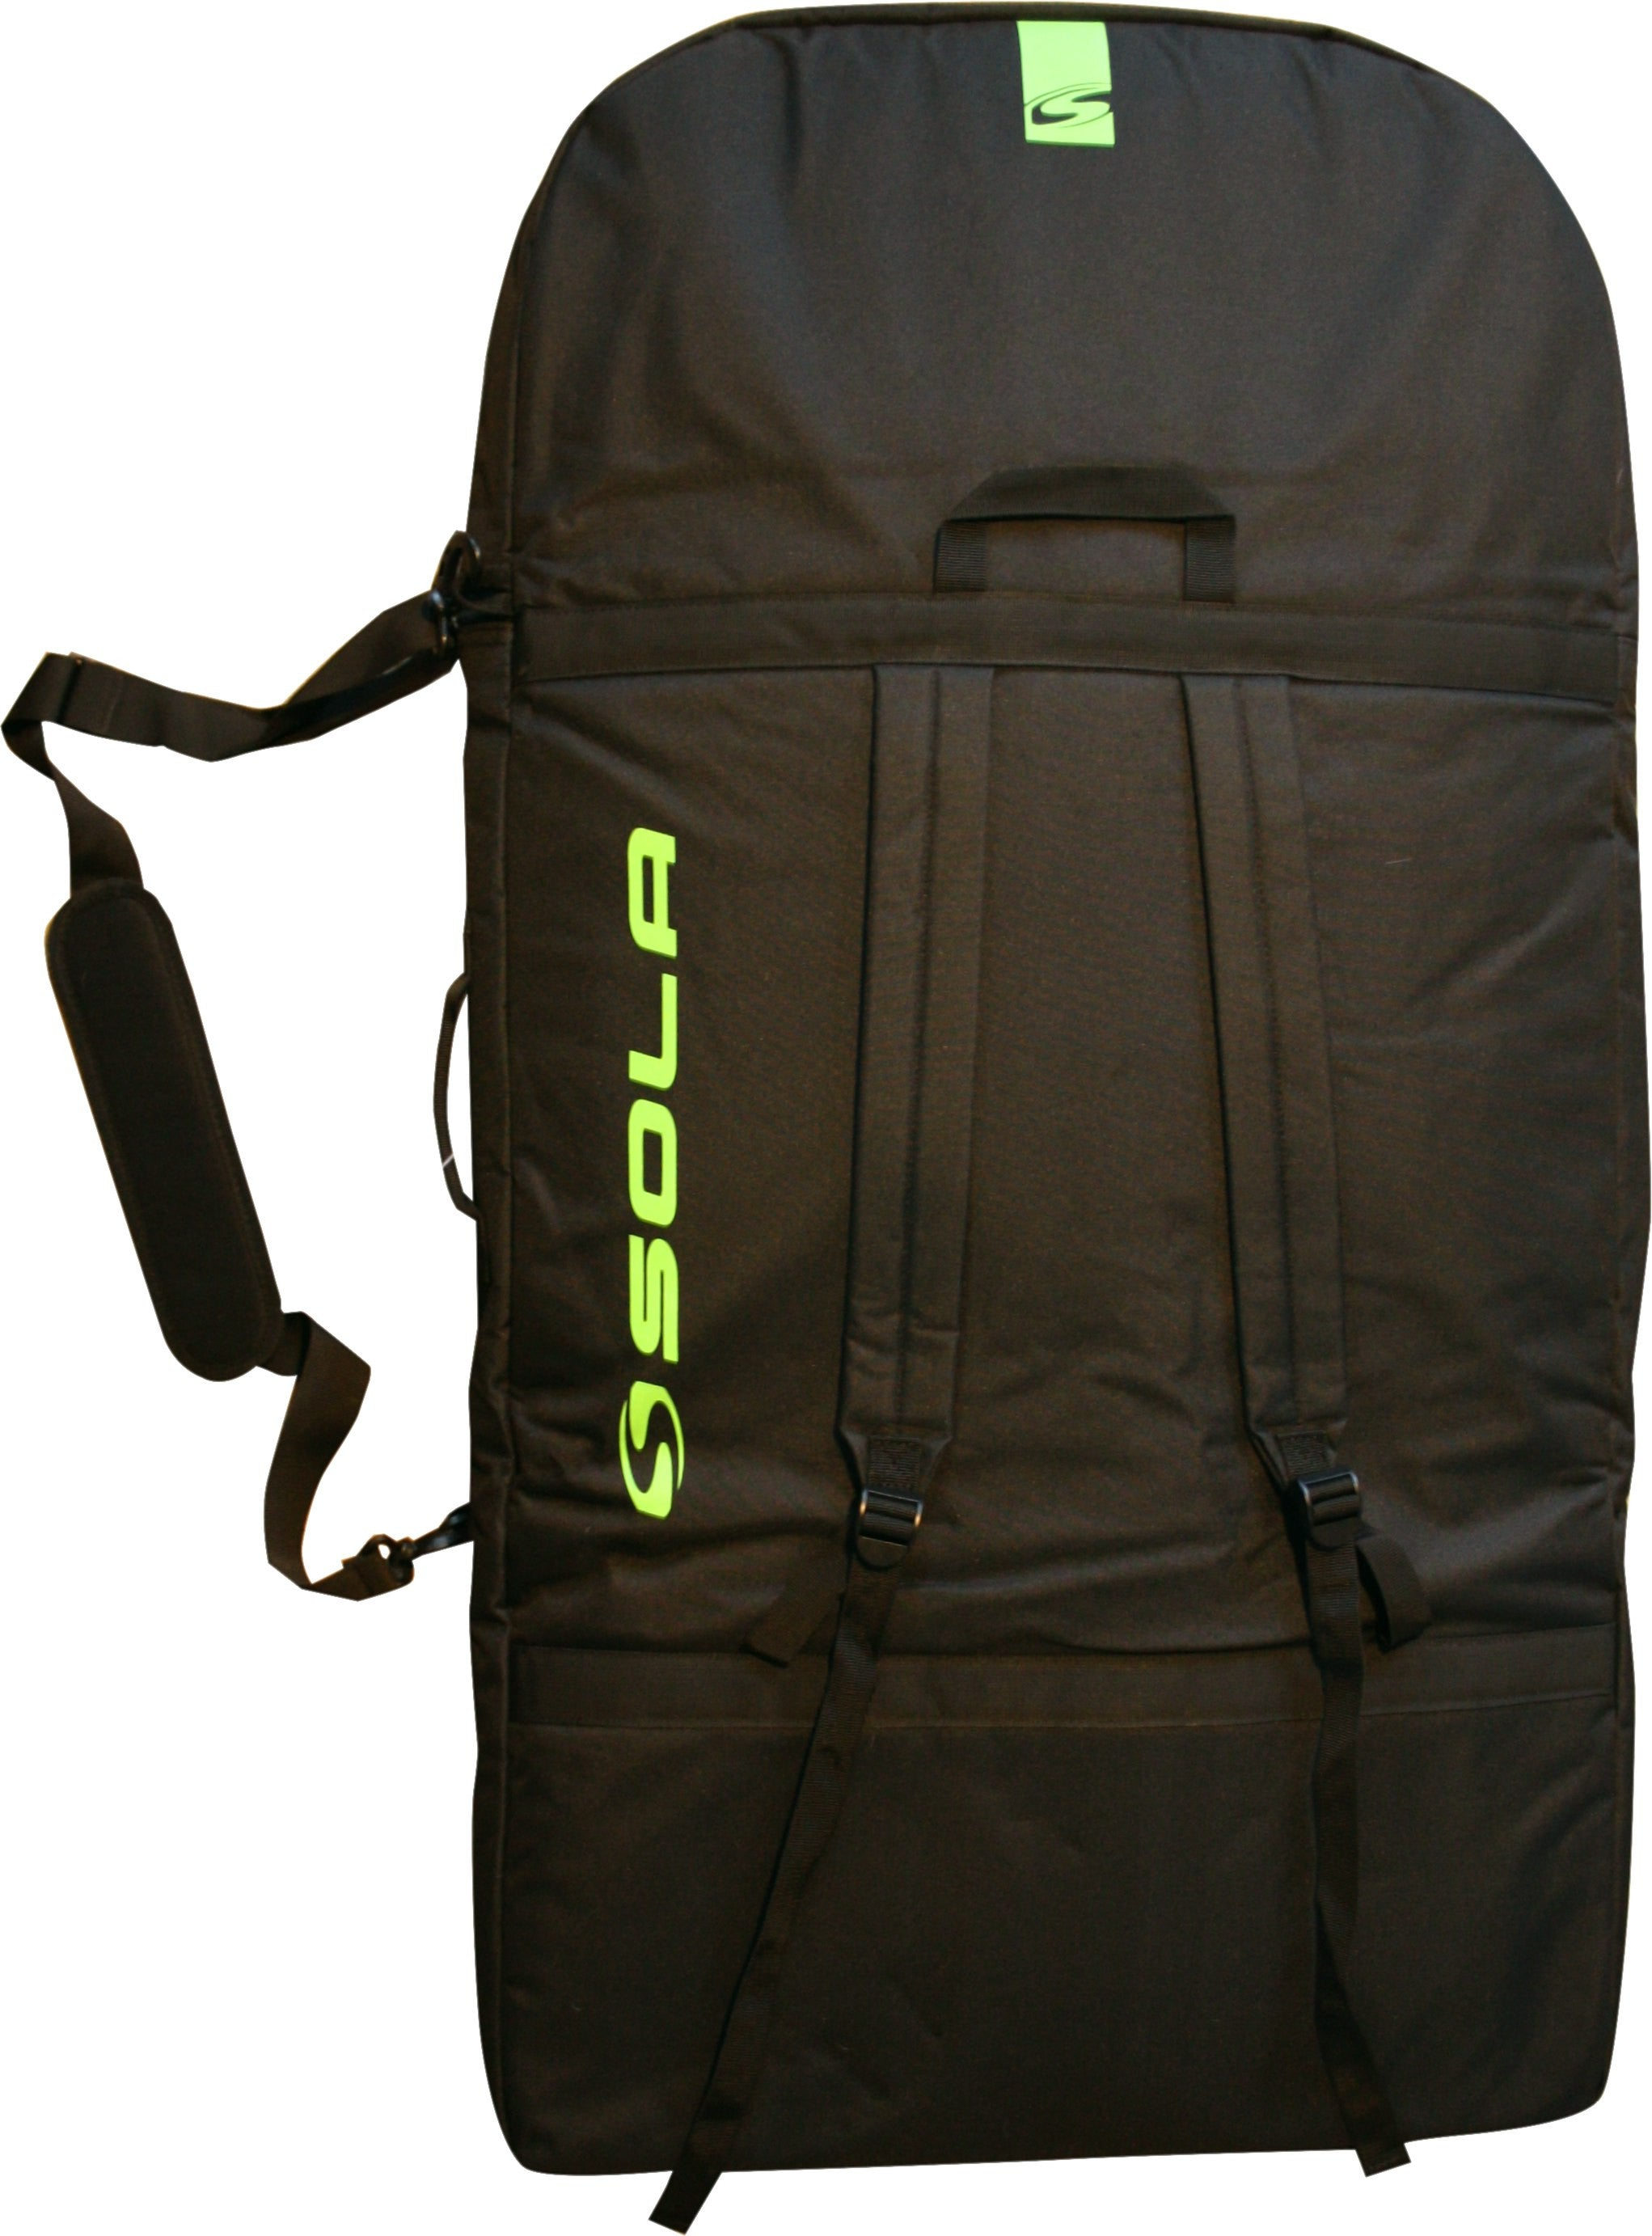 8b94568cafb3 Sola Invert Double Padded Bodyboard bag Sola Invert Double Padded Bodyboard  bag